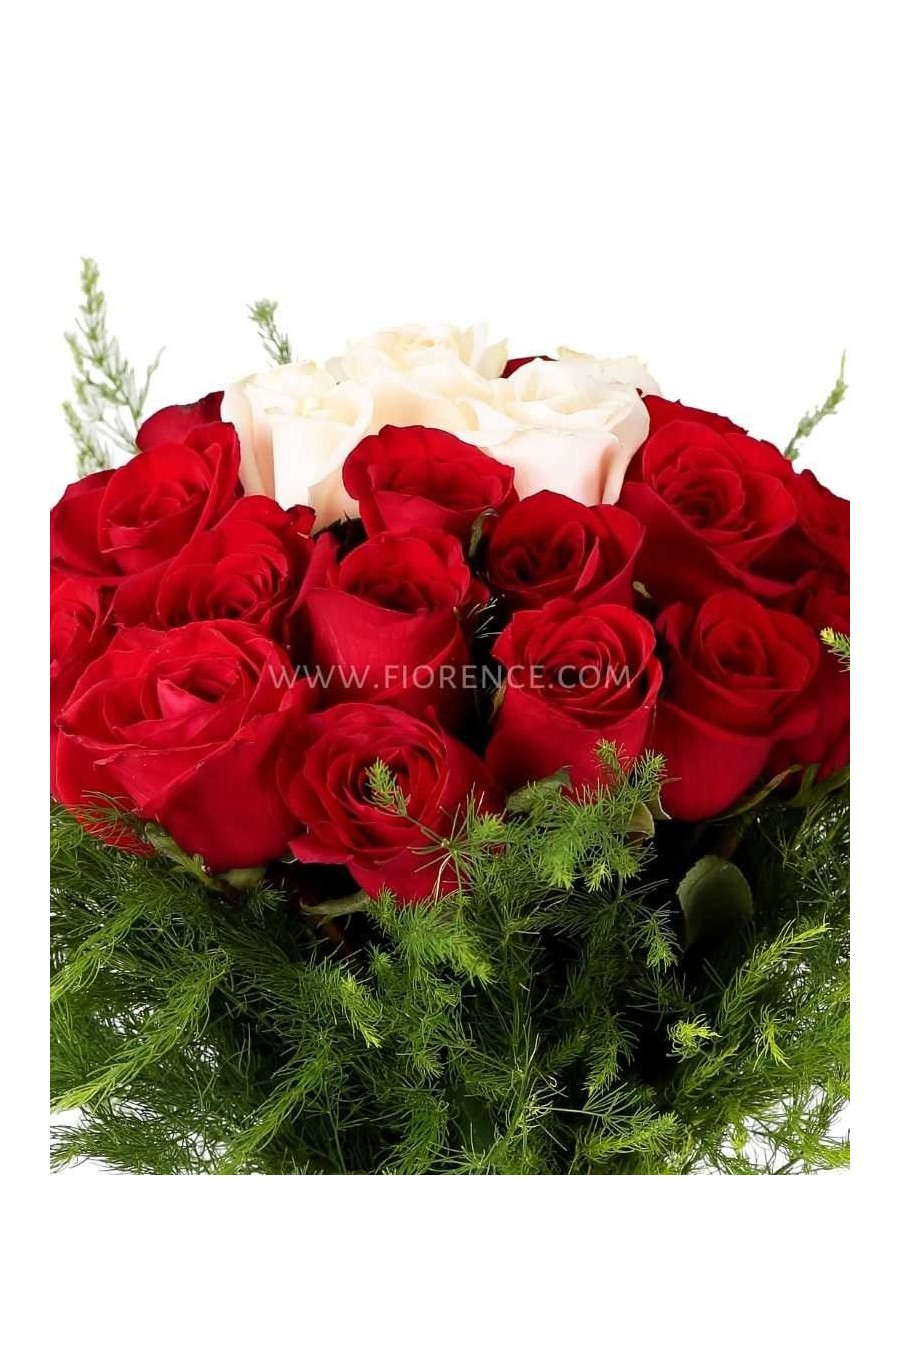 Passional Roses